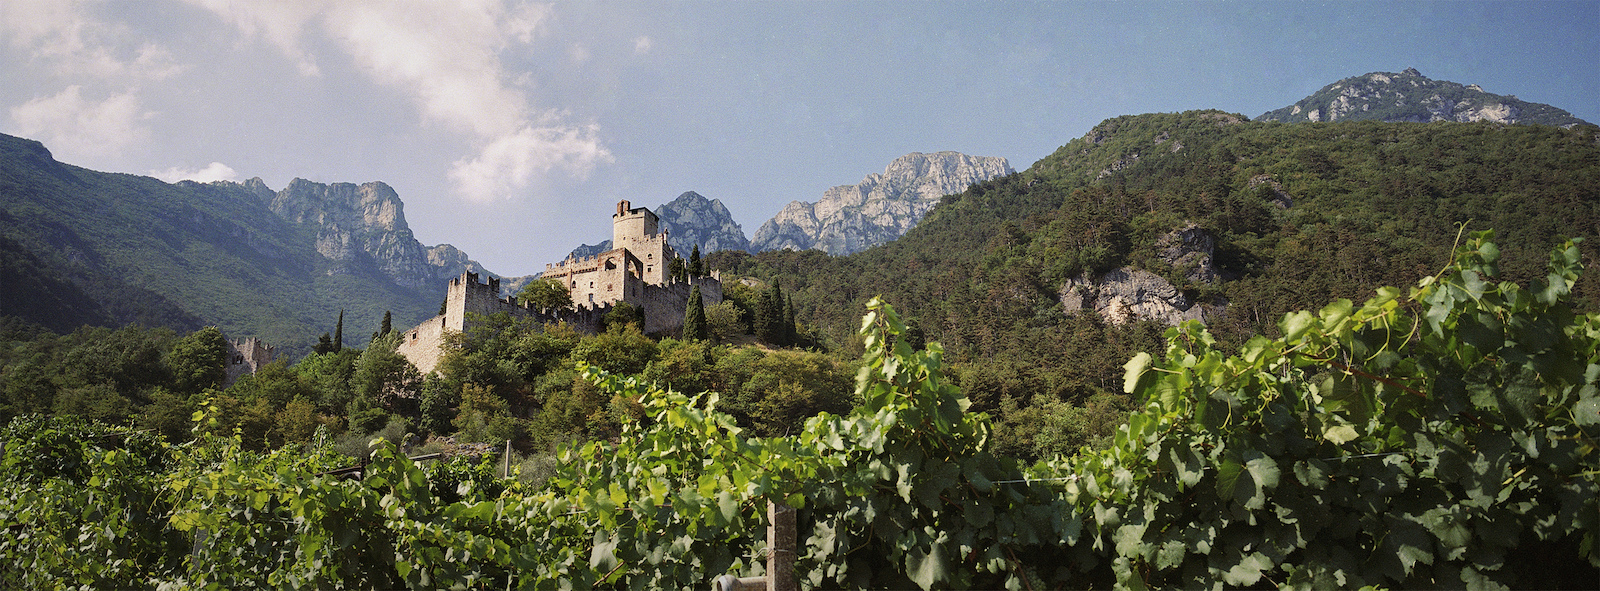 Avio is one of the many castles overlooking vineyards scattered across Italy s Trentino region.